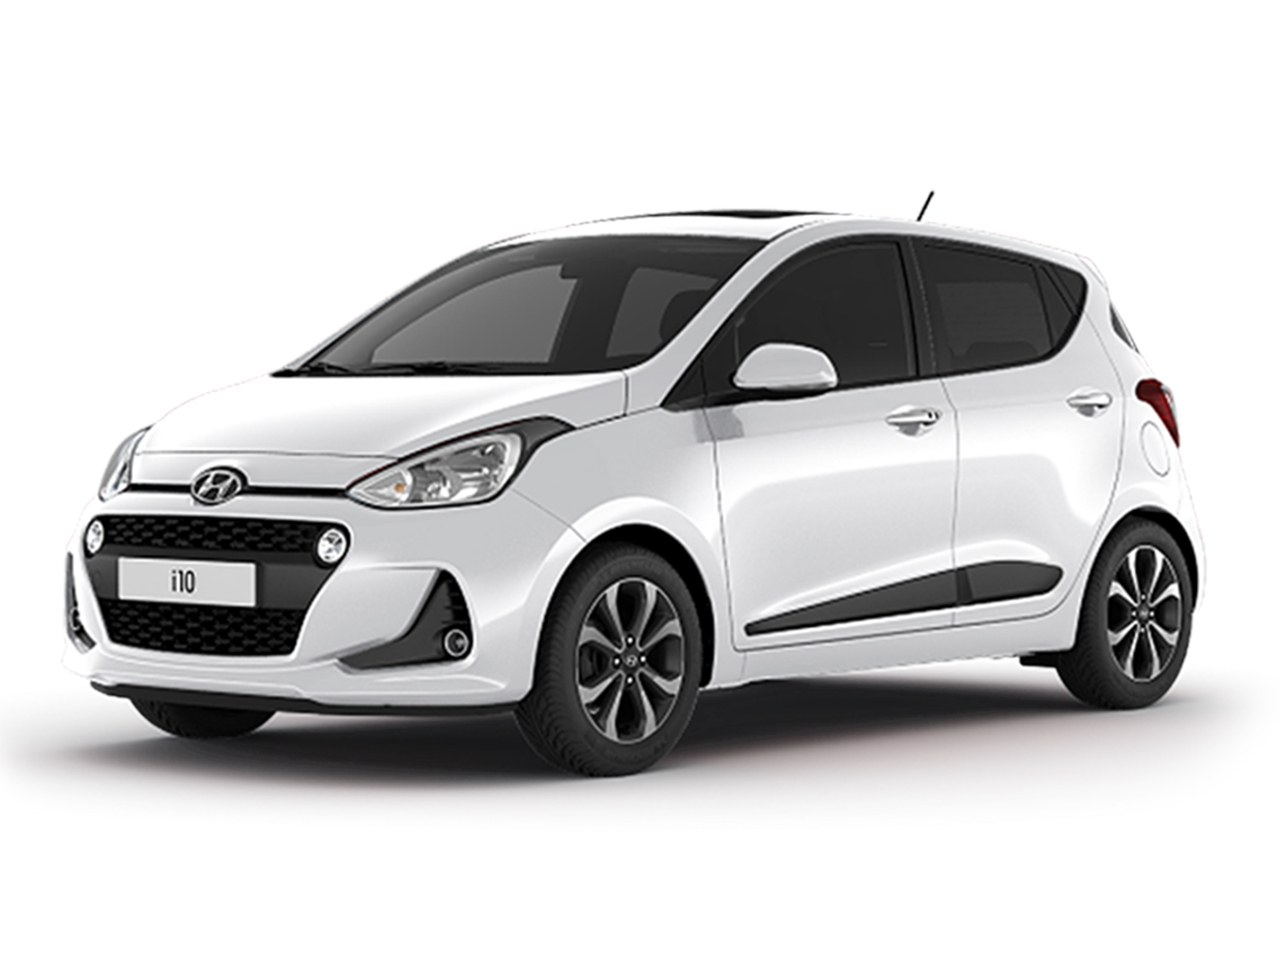 rent a car hyundai i10 car rental hyundai i10. Black Bedroom Furniture Sets. Home Design Ideas